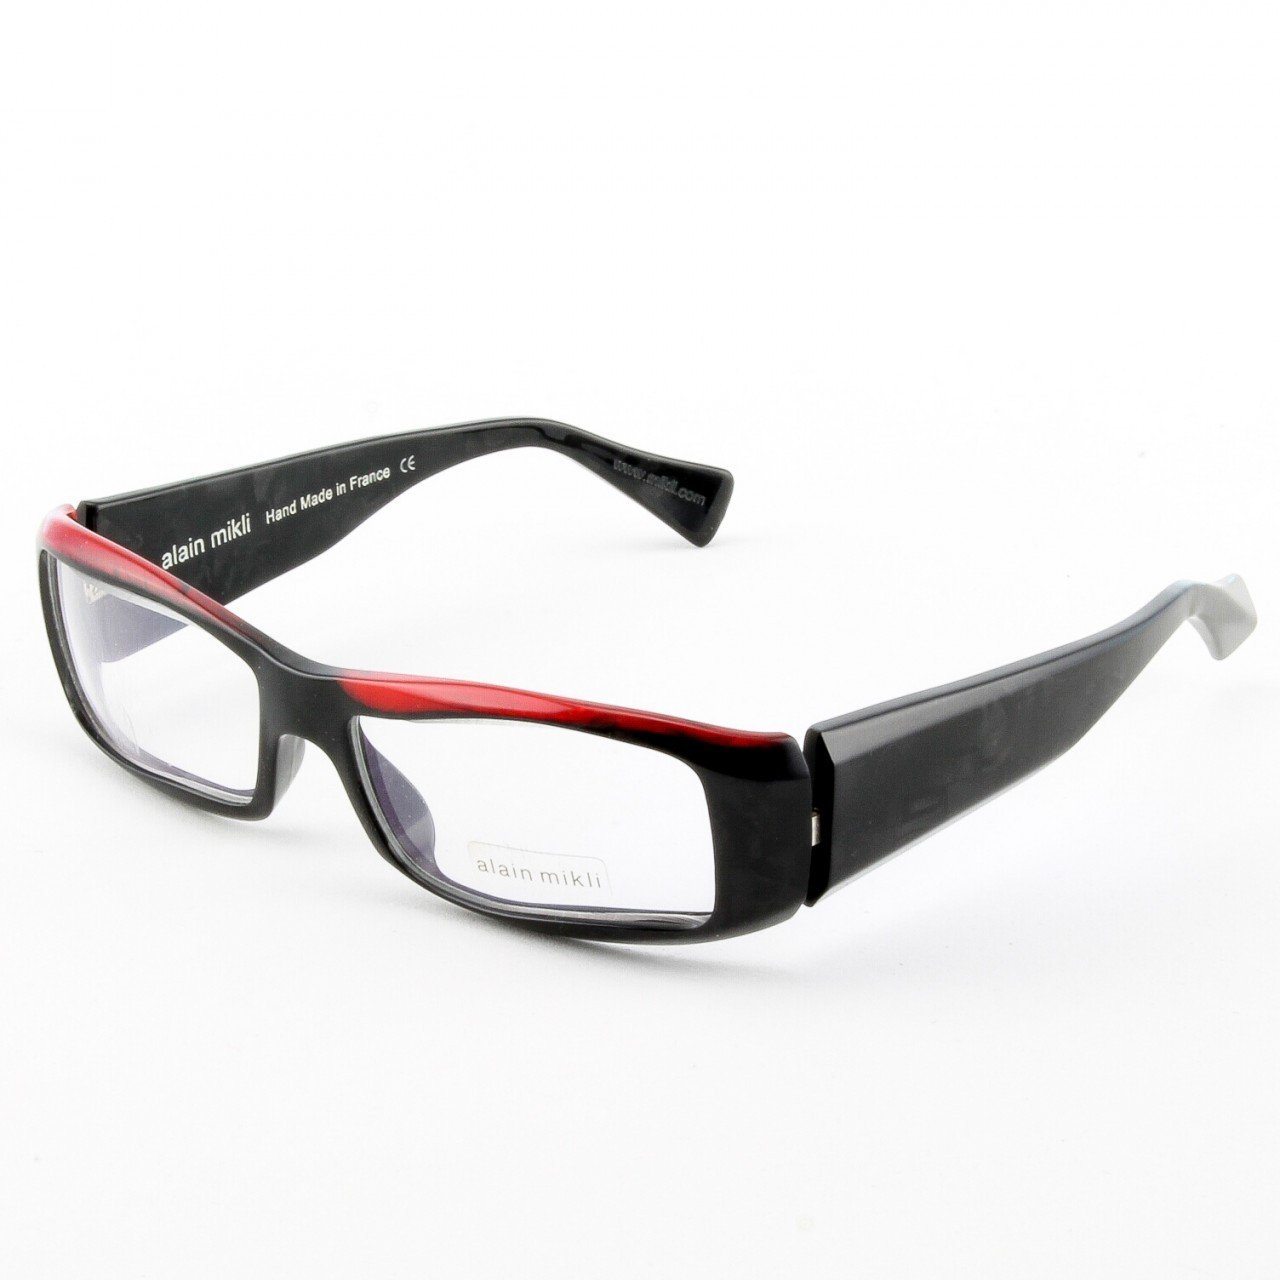 Alain Mikli Eyeglasses A0753 Col. 16 Black with Red Accent on Frame